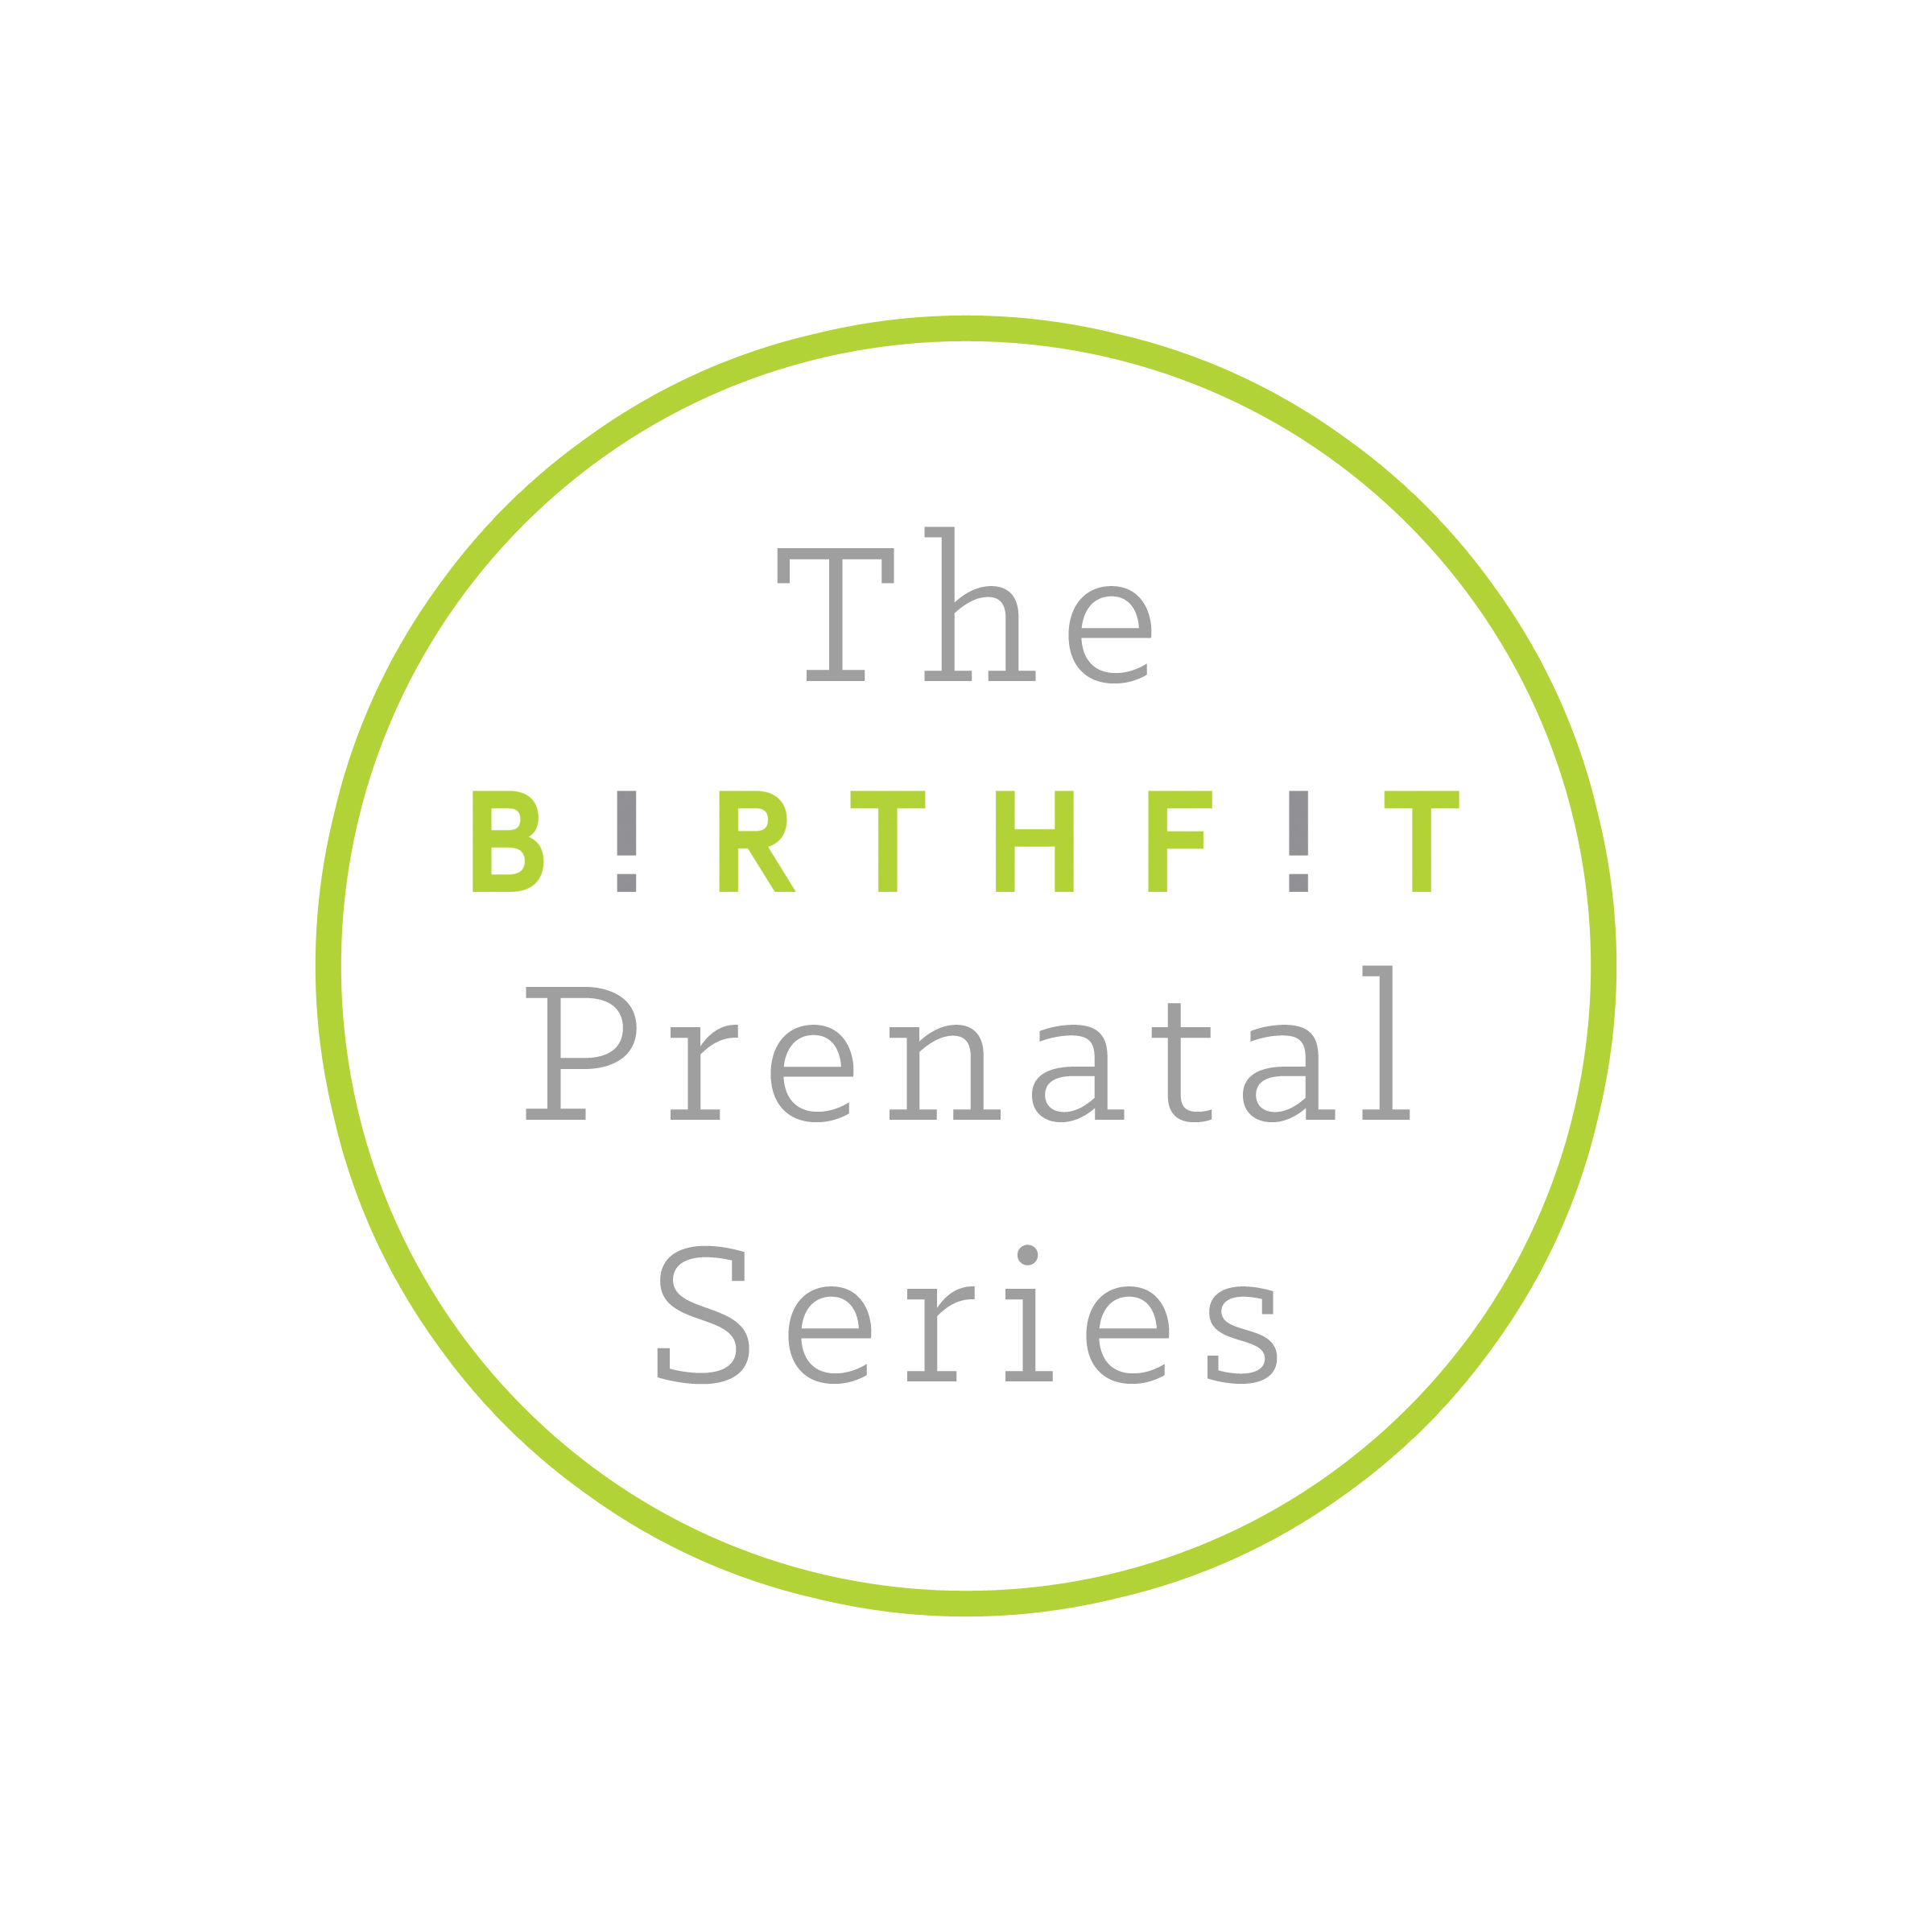 Schedule coming soon! Stay tuned for updates. - In four 3-hour group sessions, you and your birth partner will become educated and prepared for birth.-This is a comprehensive childbirth education class for Mom and Partner.-You will encounter the four pillars of BIRTHFIT: fitness, nutrition, mindset, and connection.-You will experience functional mobility, natural movement, and breath work.-You will discover your own birth desires and design your personal Queen in Training postpartum plan.*If you would like to get a group of friends together or host a series at your facility, please email us to inquire.*Private classes are available upon request.